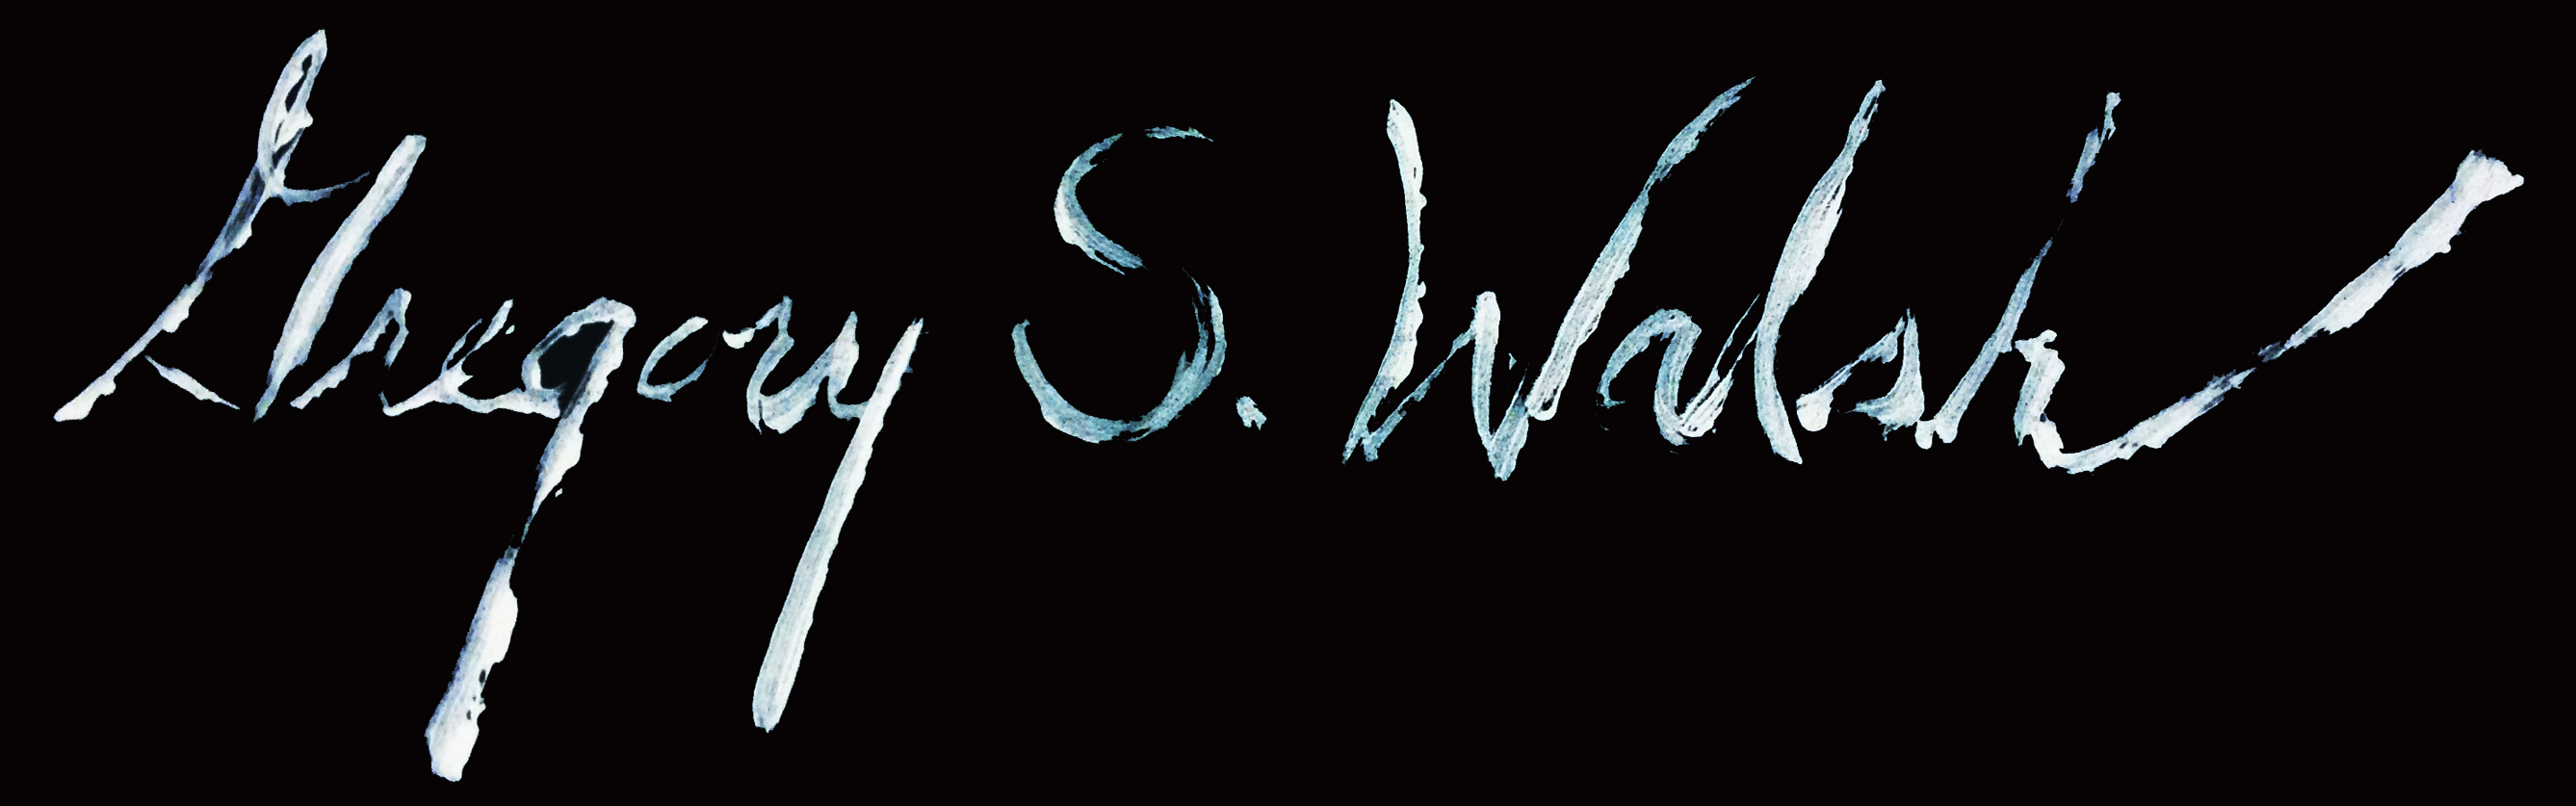 GregORY S. Walsh Signature